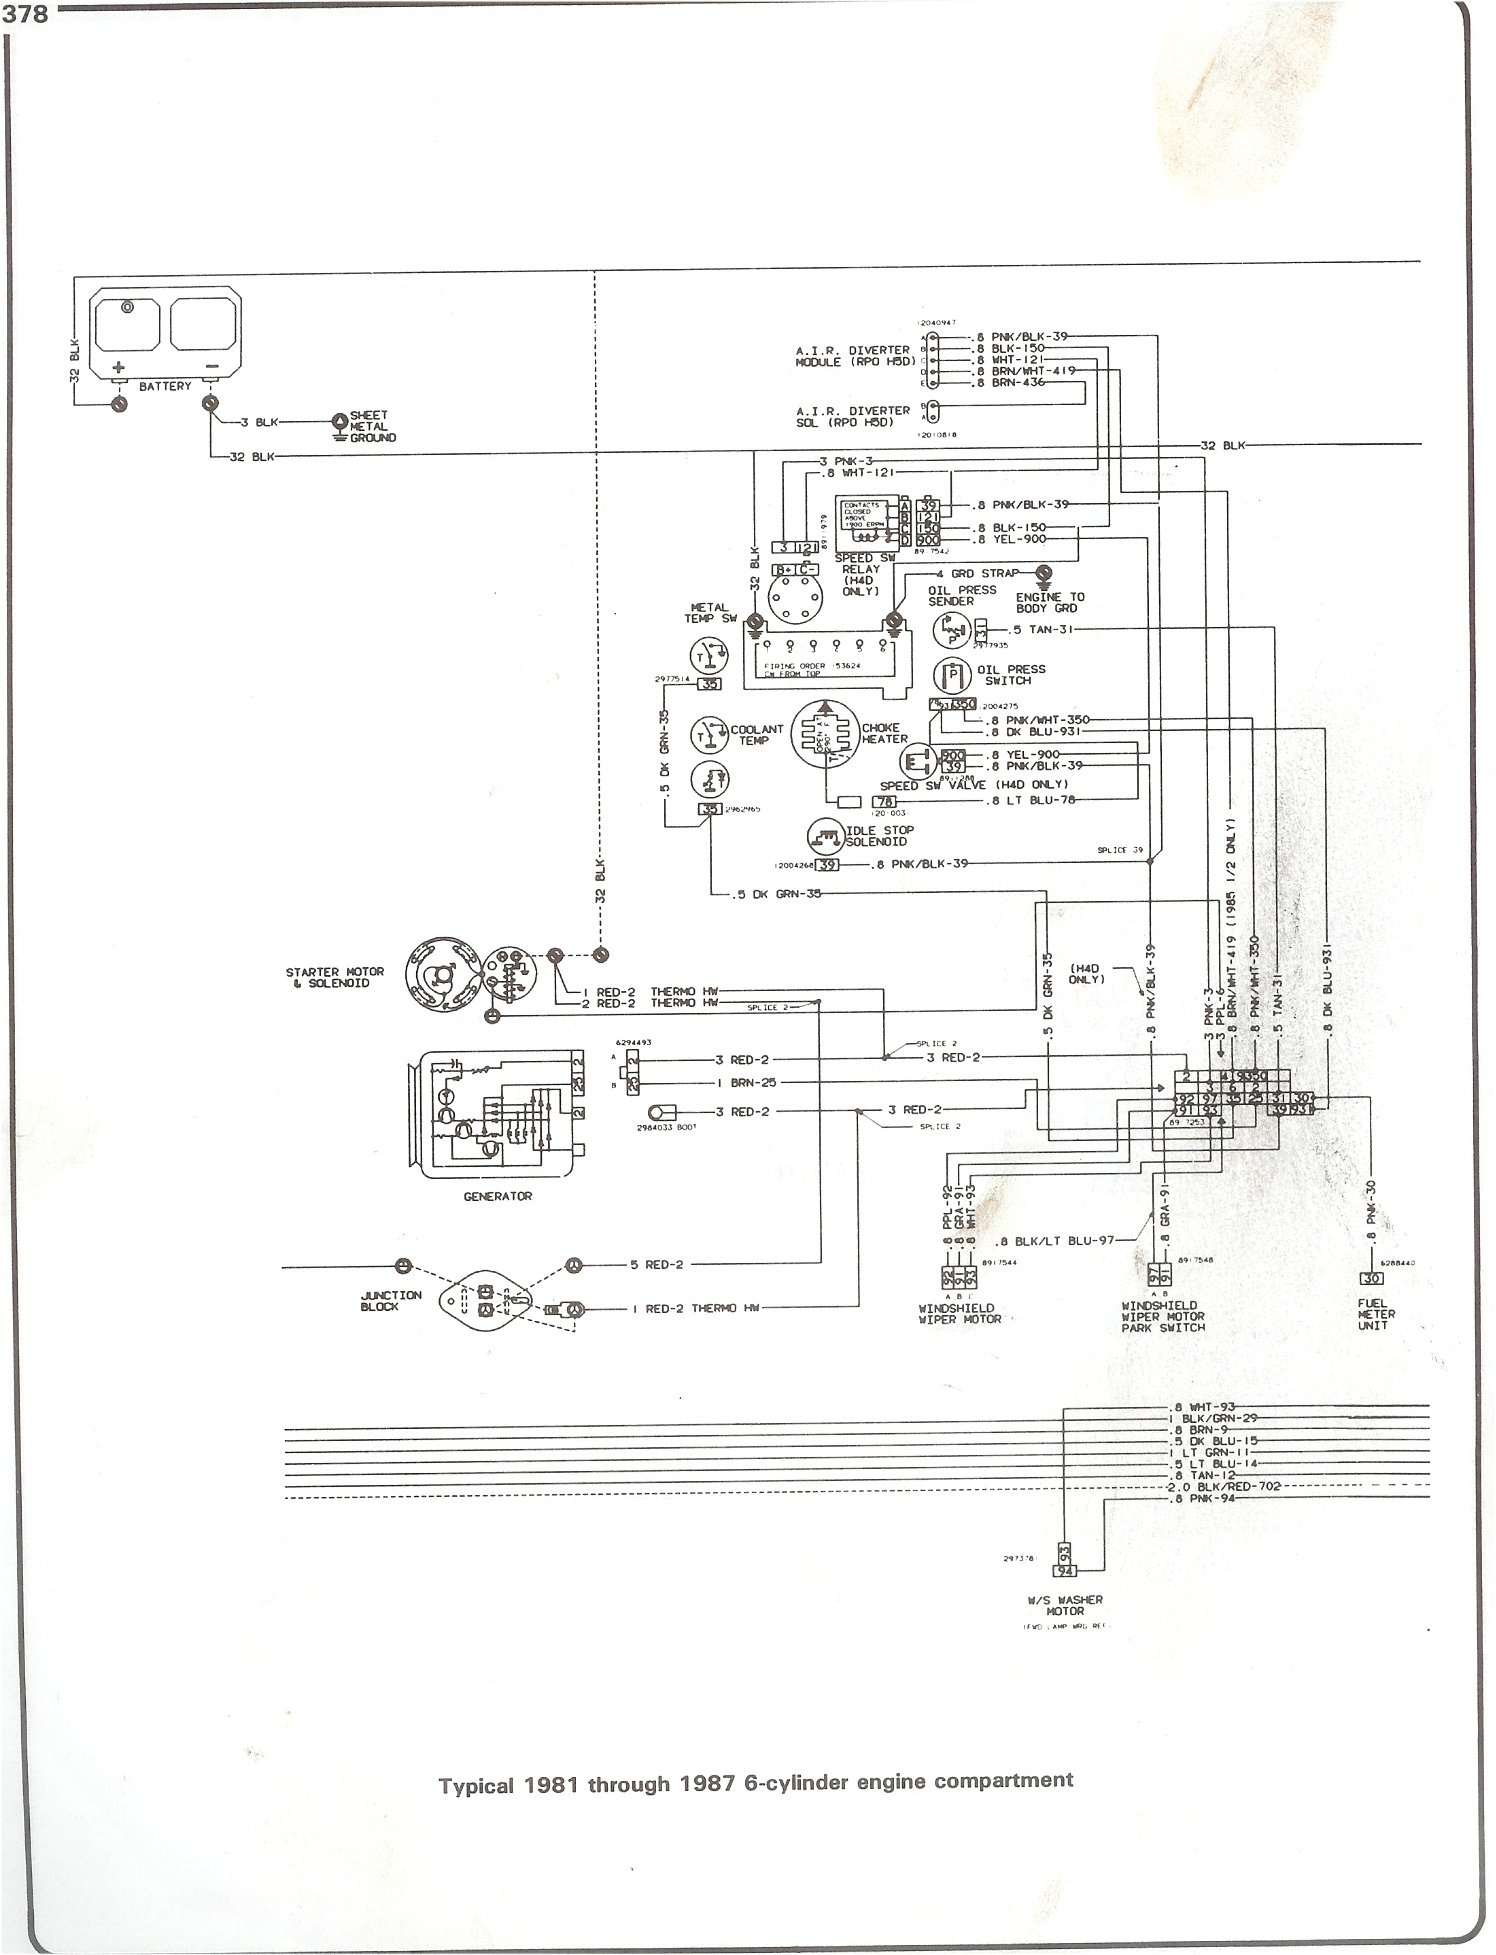 1987 chevy c30 wiring diagram example electrical wiring diagram u2022 rh cranejapan co 1936 Chevy Wiring Diagram 1986 Chevy Headlight Wiring Diagram